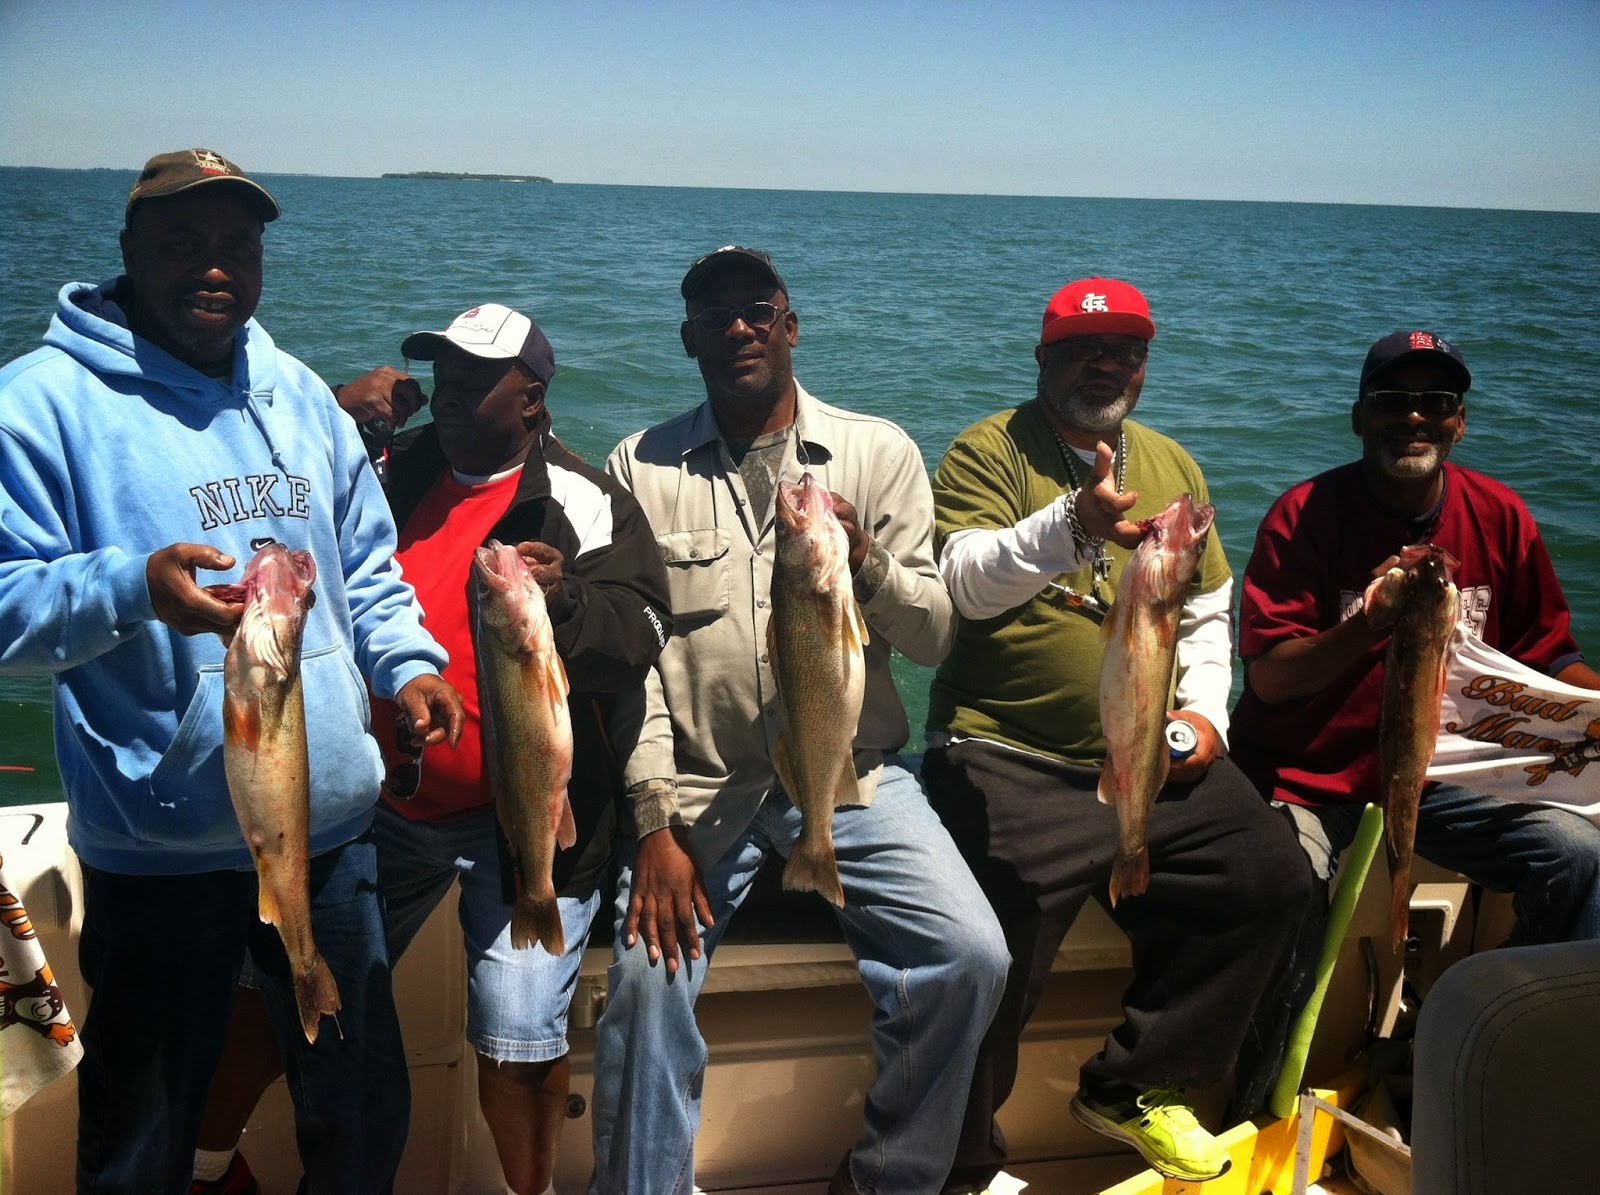 Lake erie walleye fishing reports west of middle island 6 14 for Fishing report lake erie